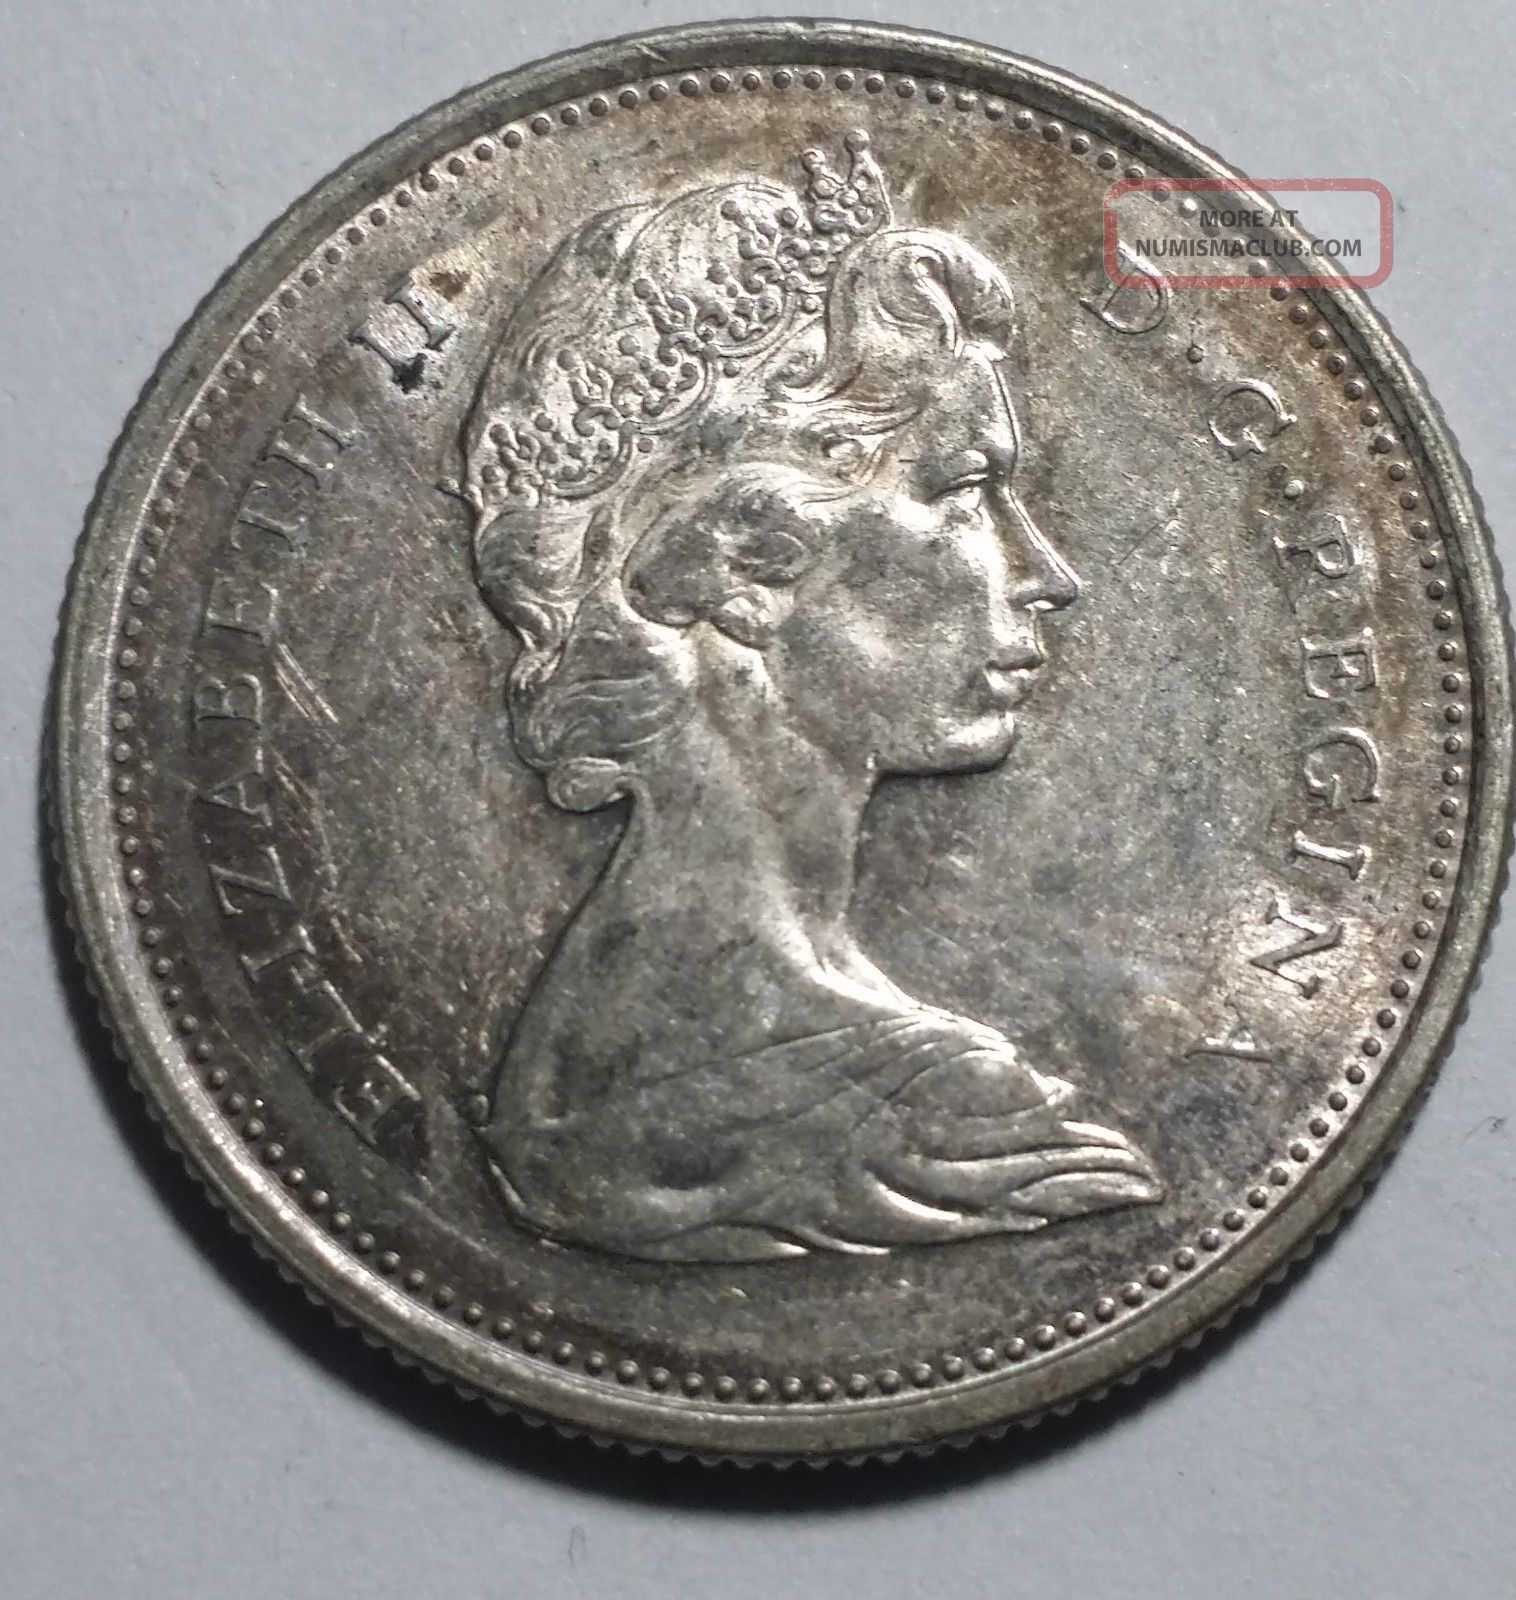 1967 25 cent coin value